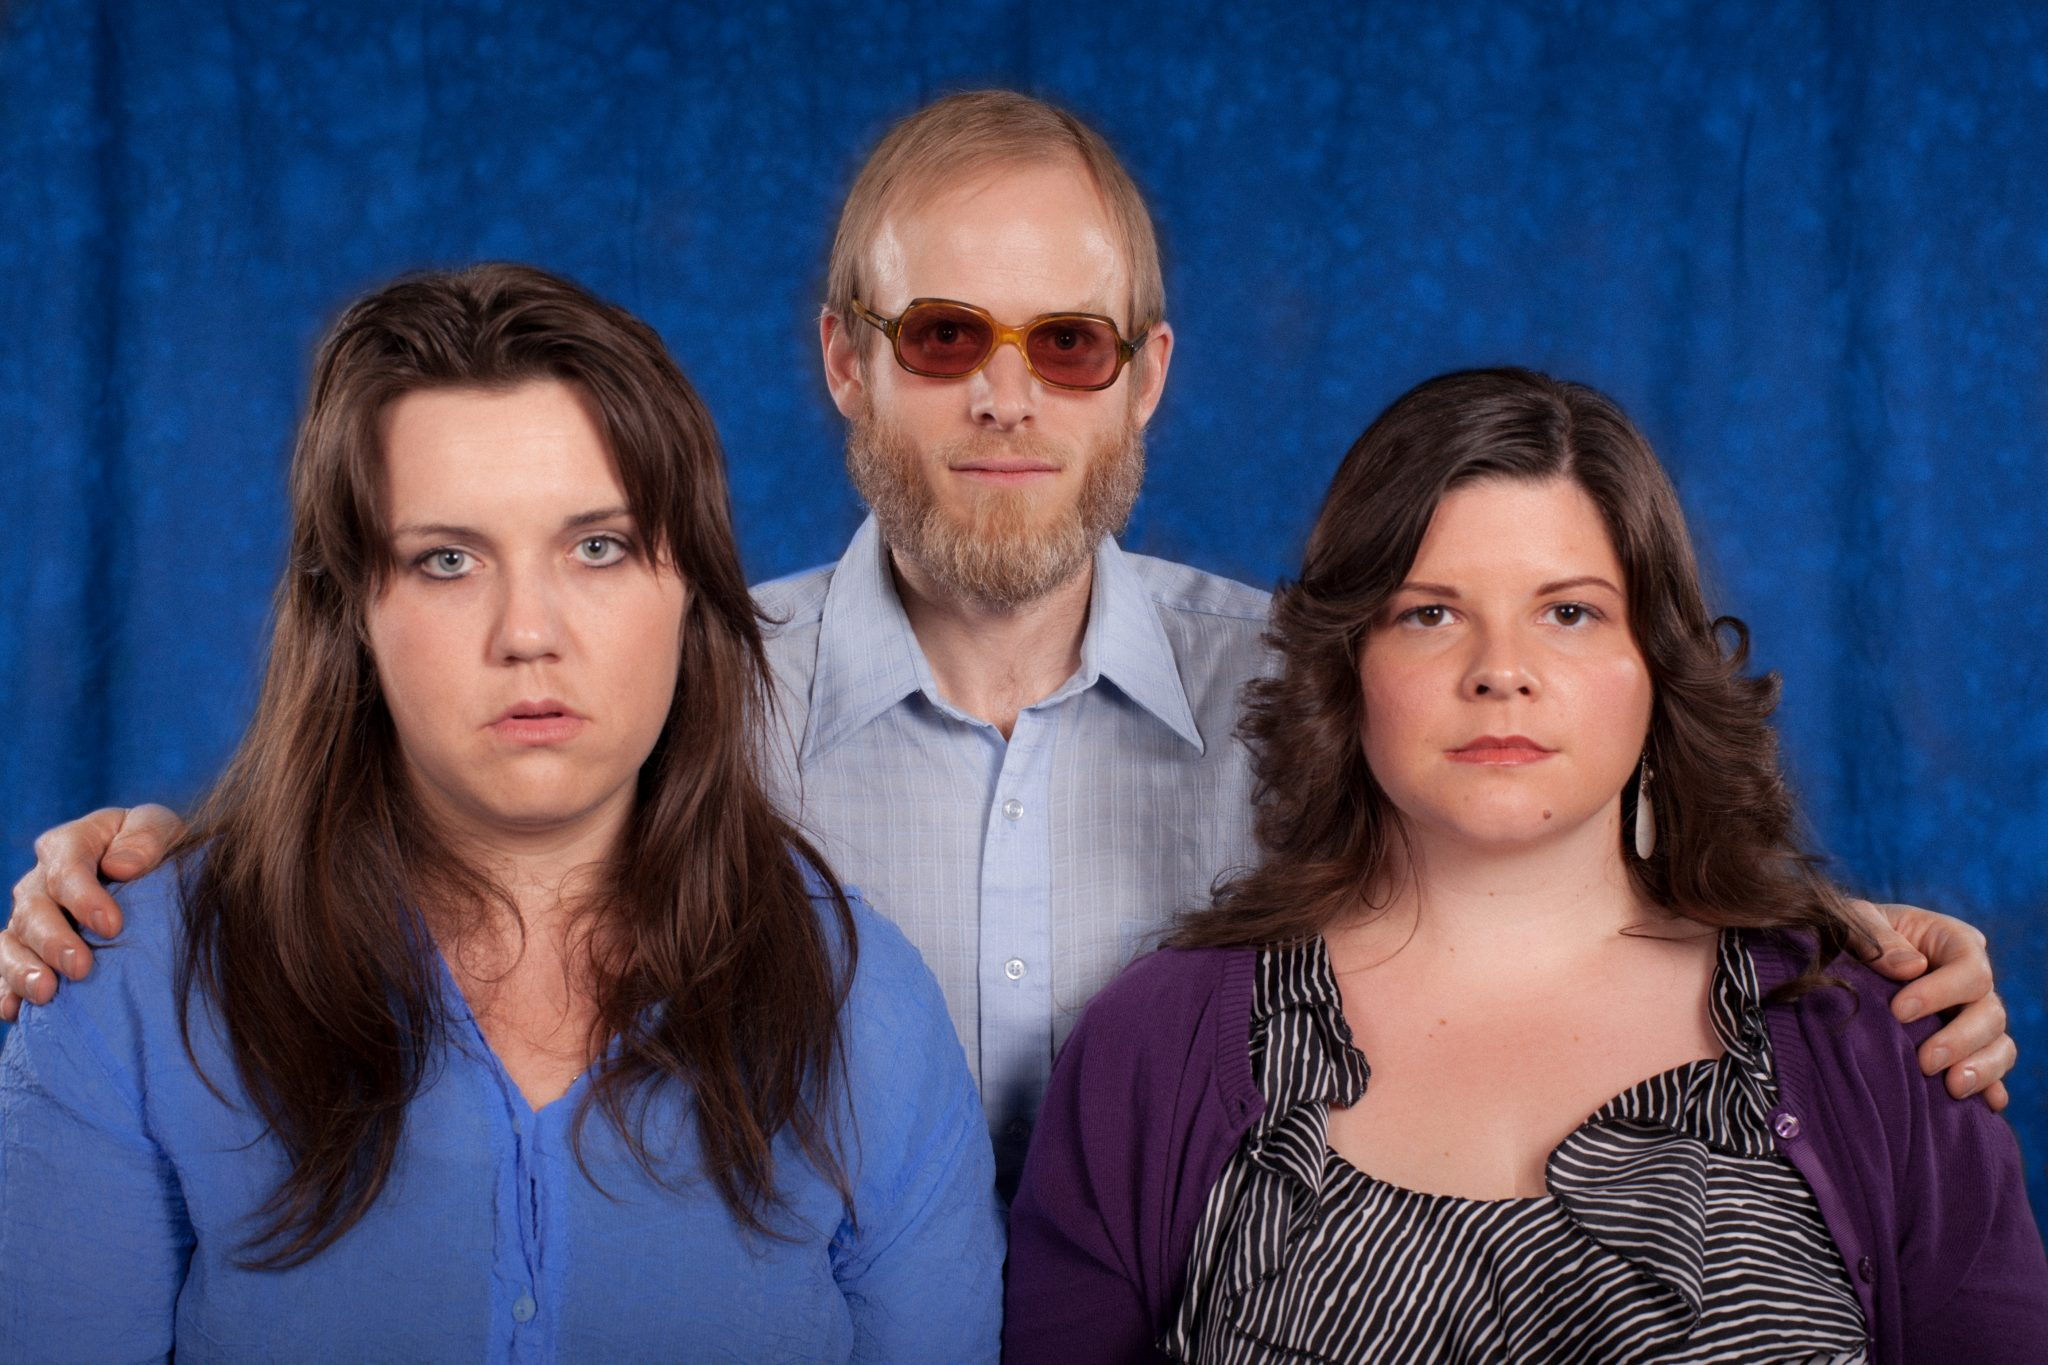 Staged family portrait